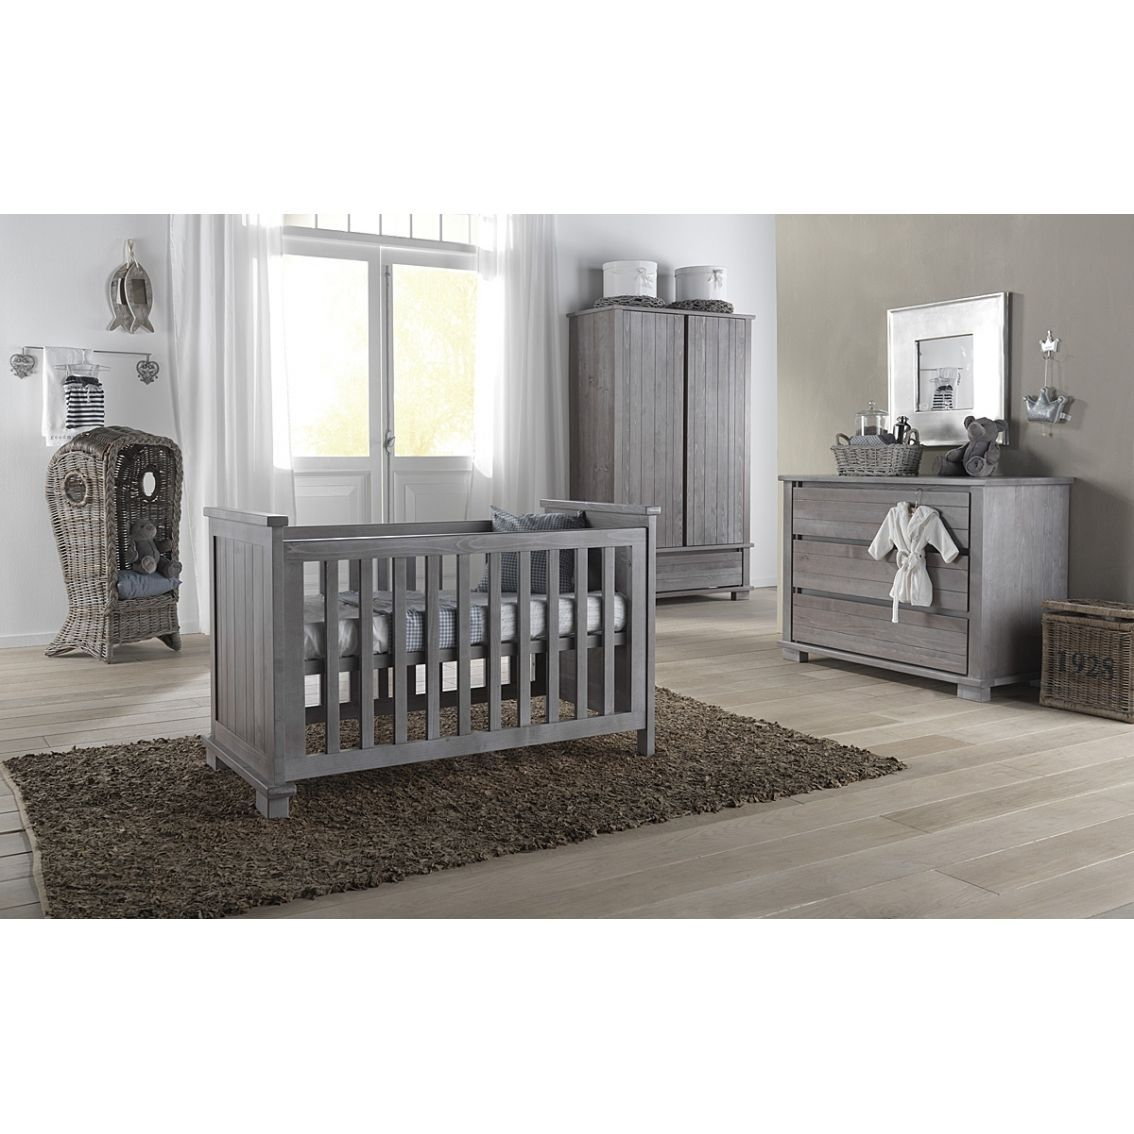 grey furniture nursery. Kidsmill Malmo Smoked Grey Nursery Furniture Set - Could Work With This :) L